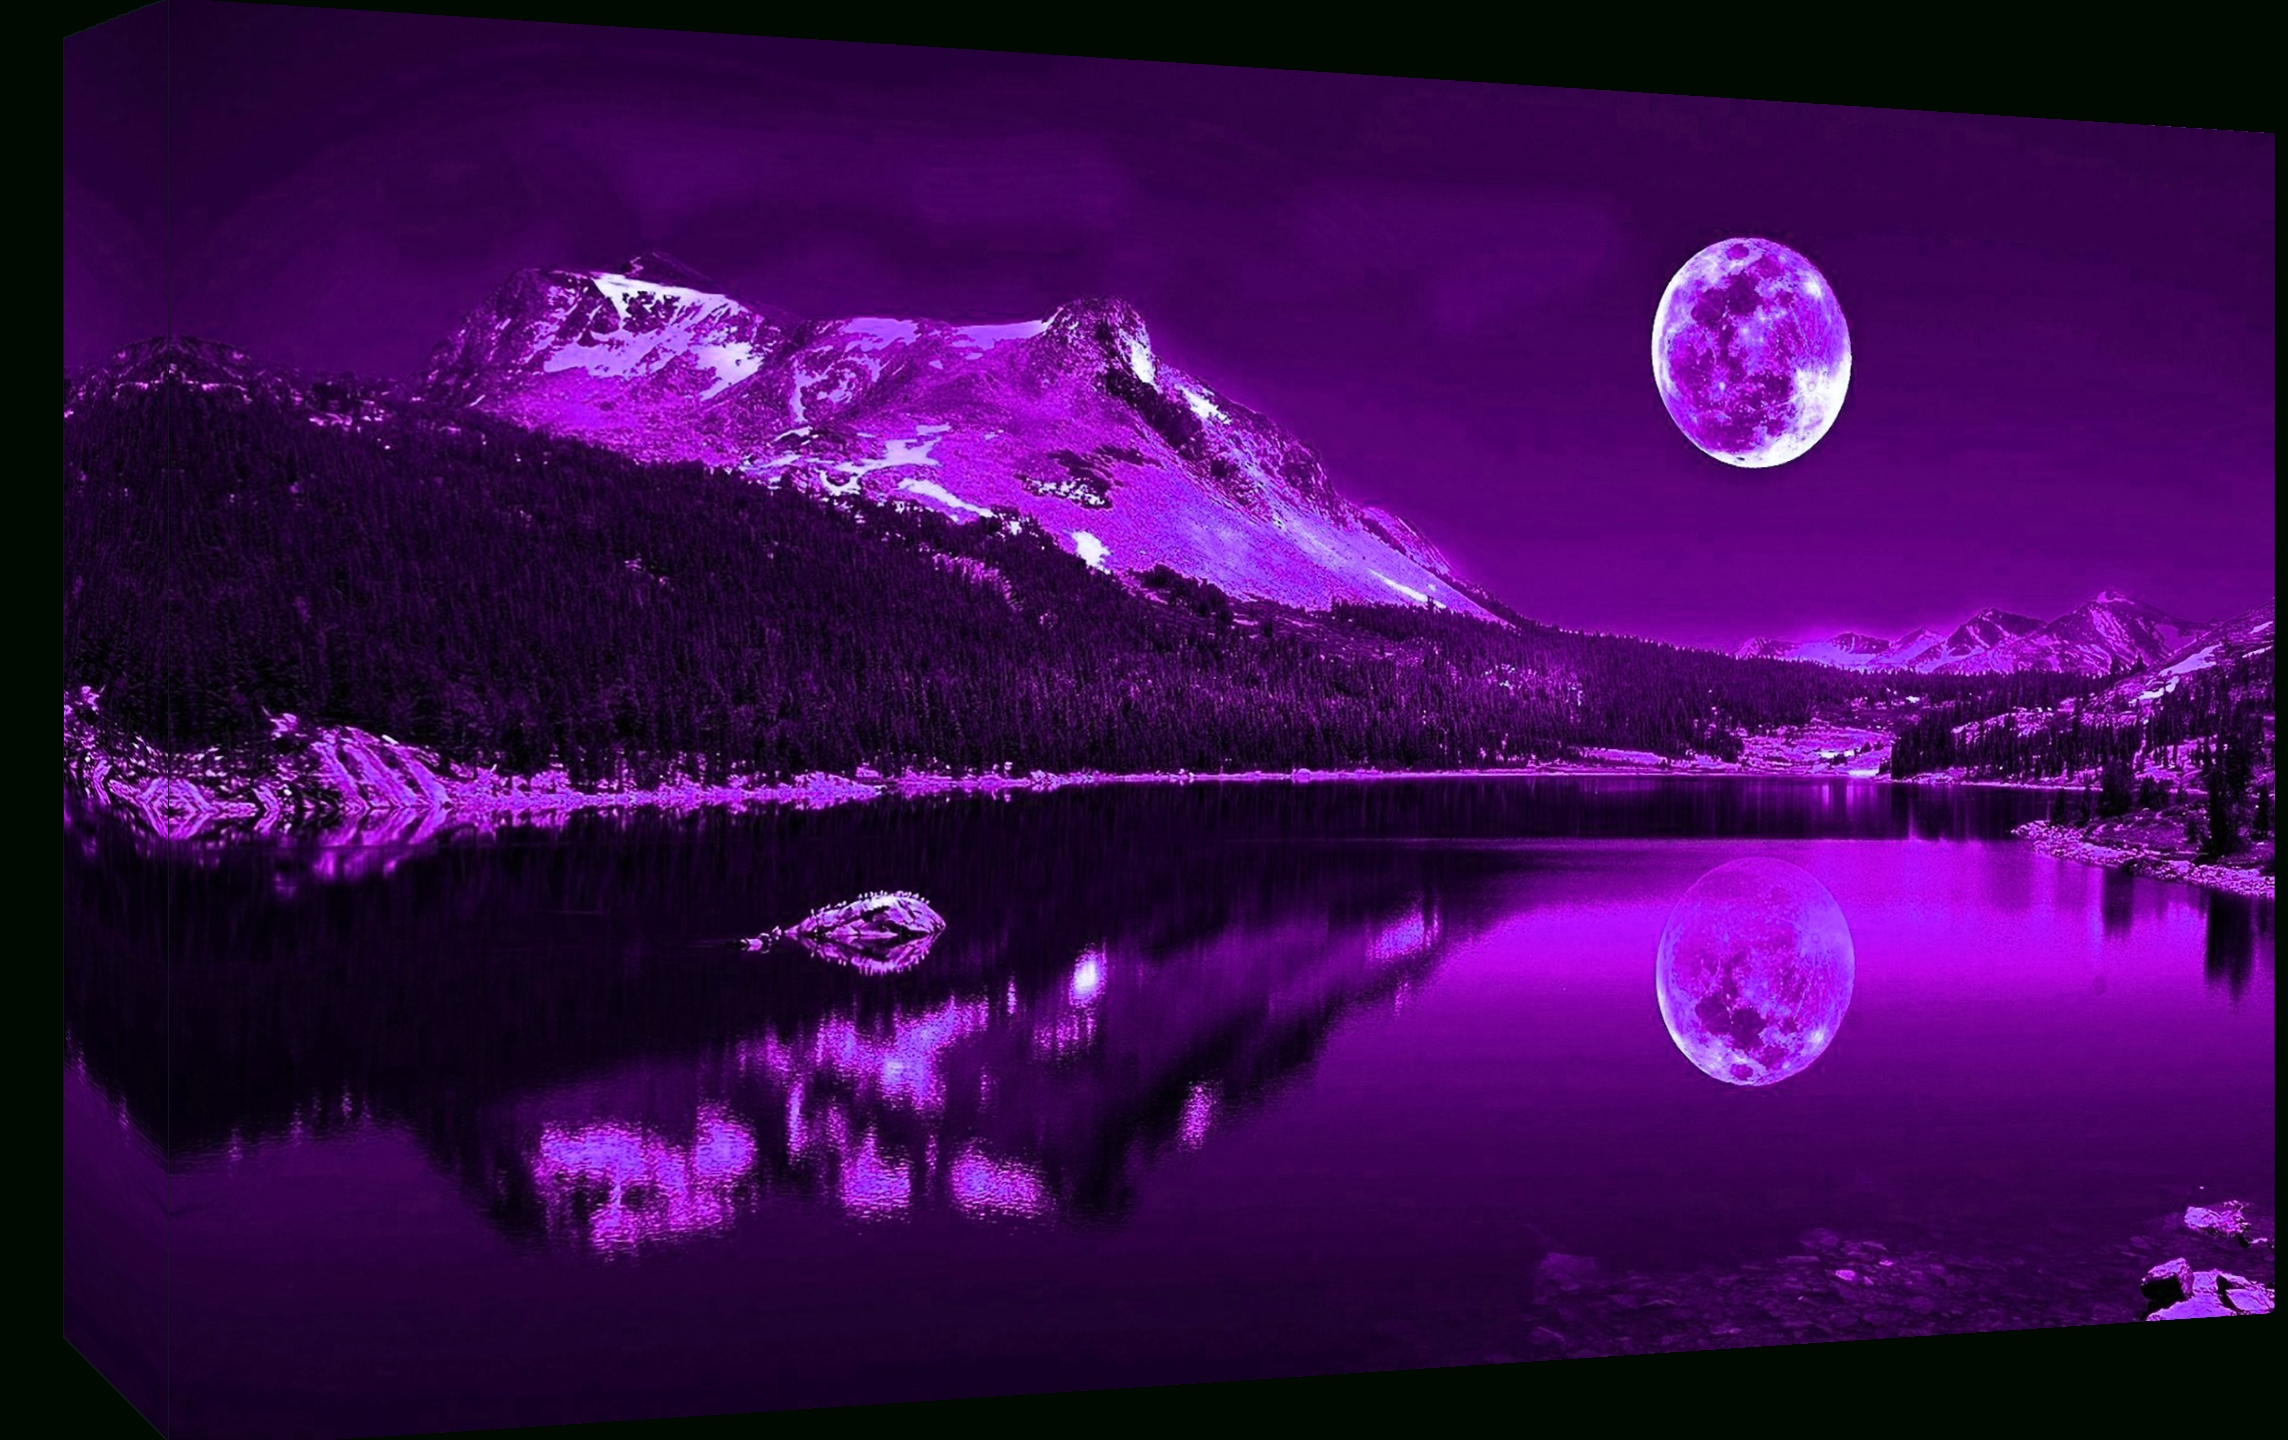 Purple Plum Moonlit Lake Cotton Canvas Wall Art Picture Print – A1 For Most Recent Purple Canvas Wall Art (View 18 of 20)